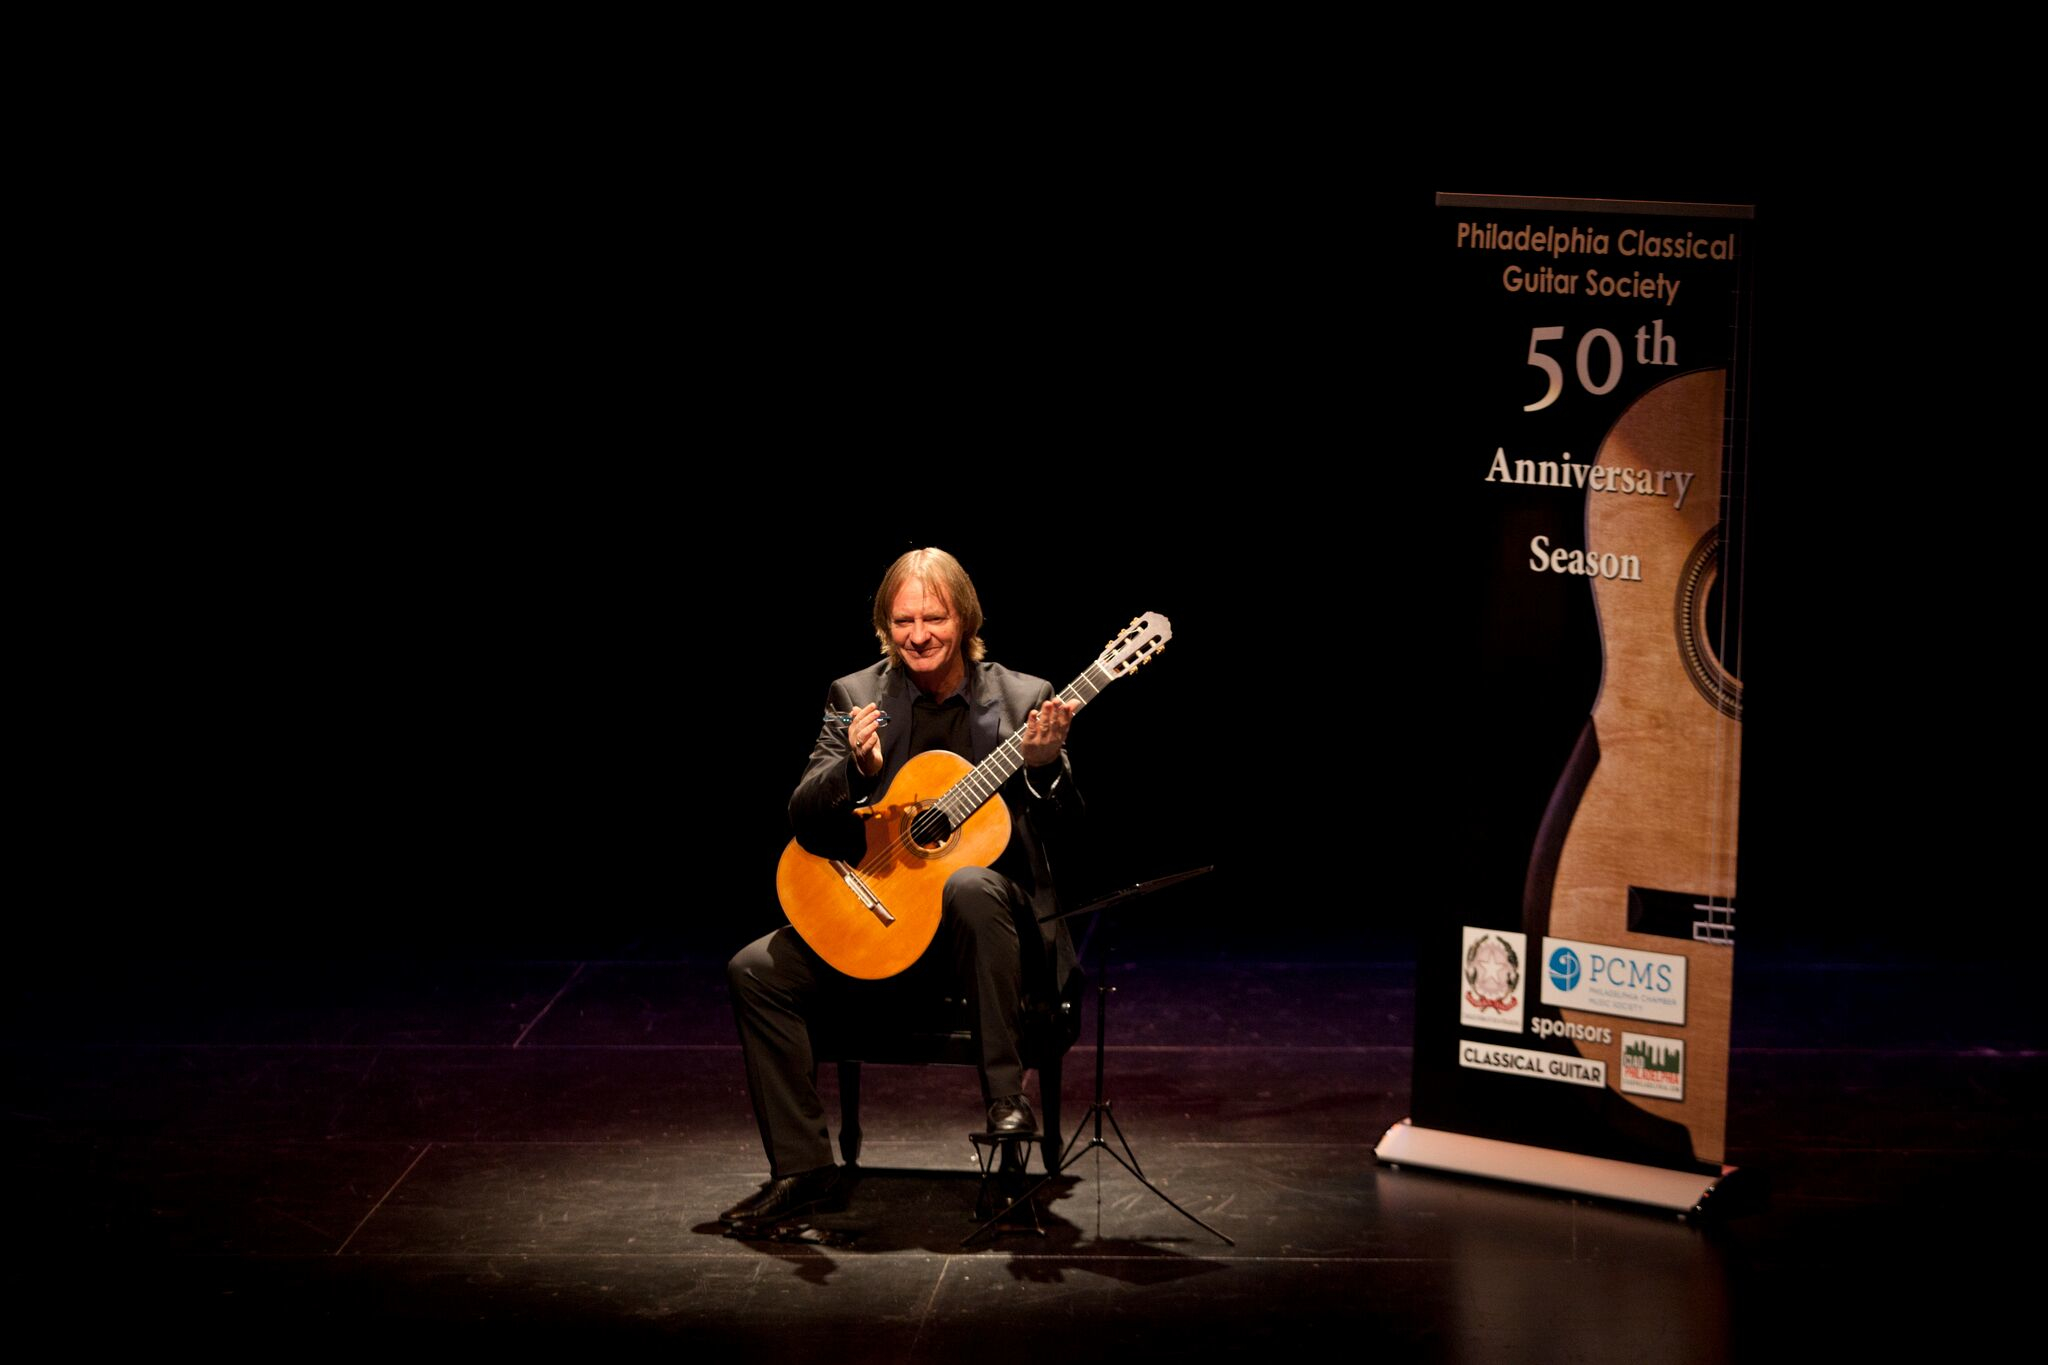 Classical guitarist David Russell playing at Drexel University's Mandell Theater this past spring, which Zillmer helped make happen.